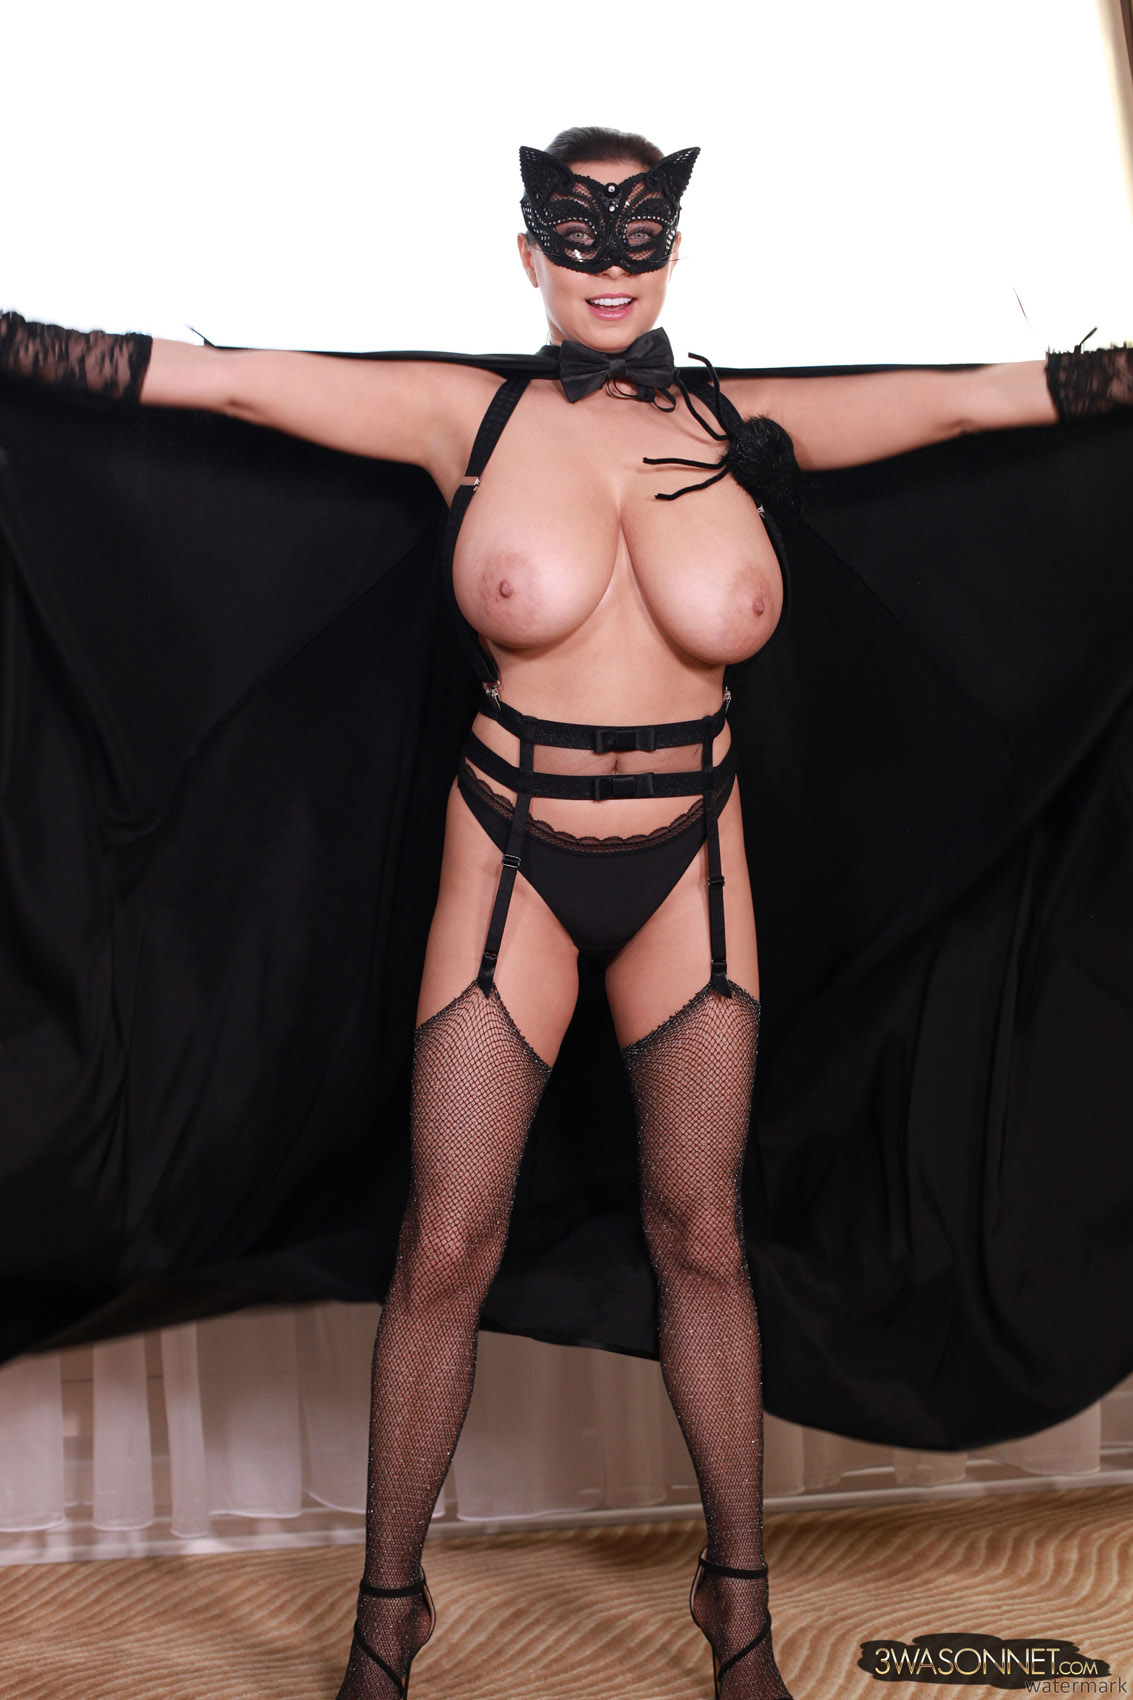 Ewa Sonnet Pussy in ewa sonnet pussy cat costume - prime curves